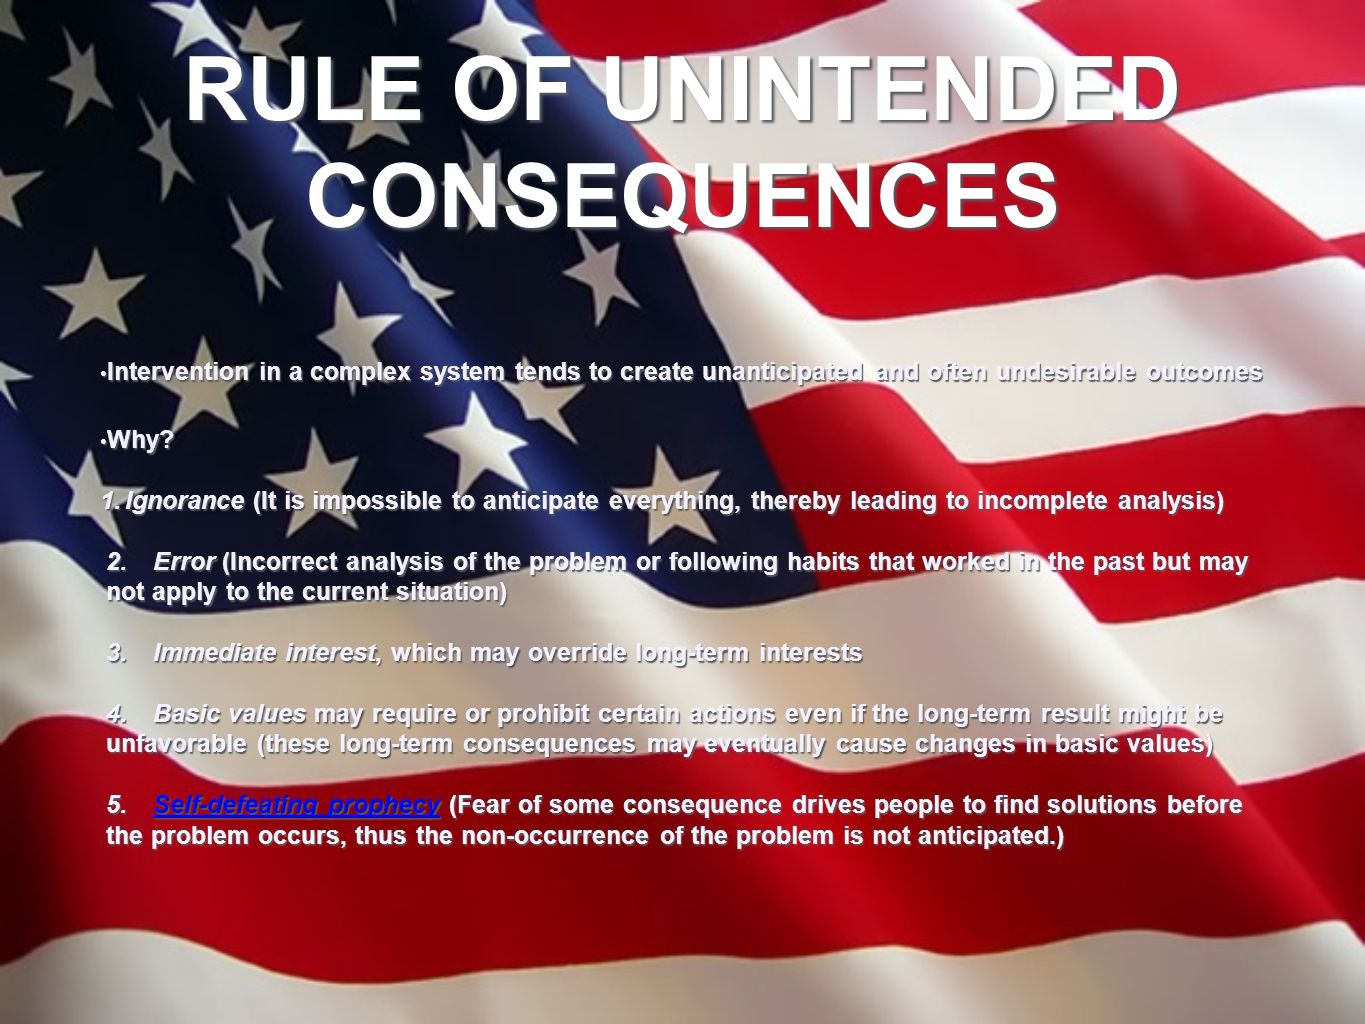 RULE OF UNINTENDED CONSEQUENCES Intervention in a complex system tends to create unanticipated and often undesirable outcomes Intervention in a comple